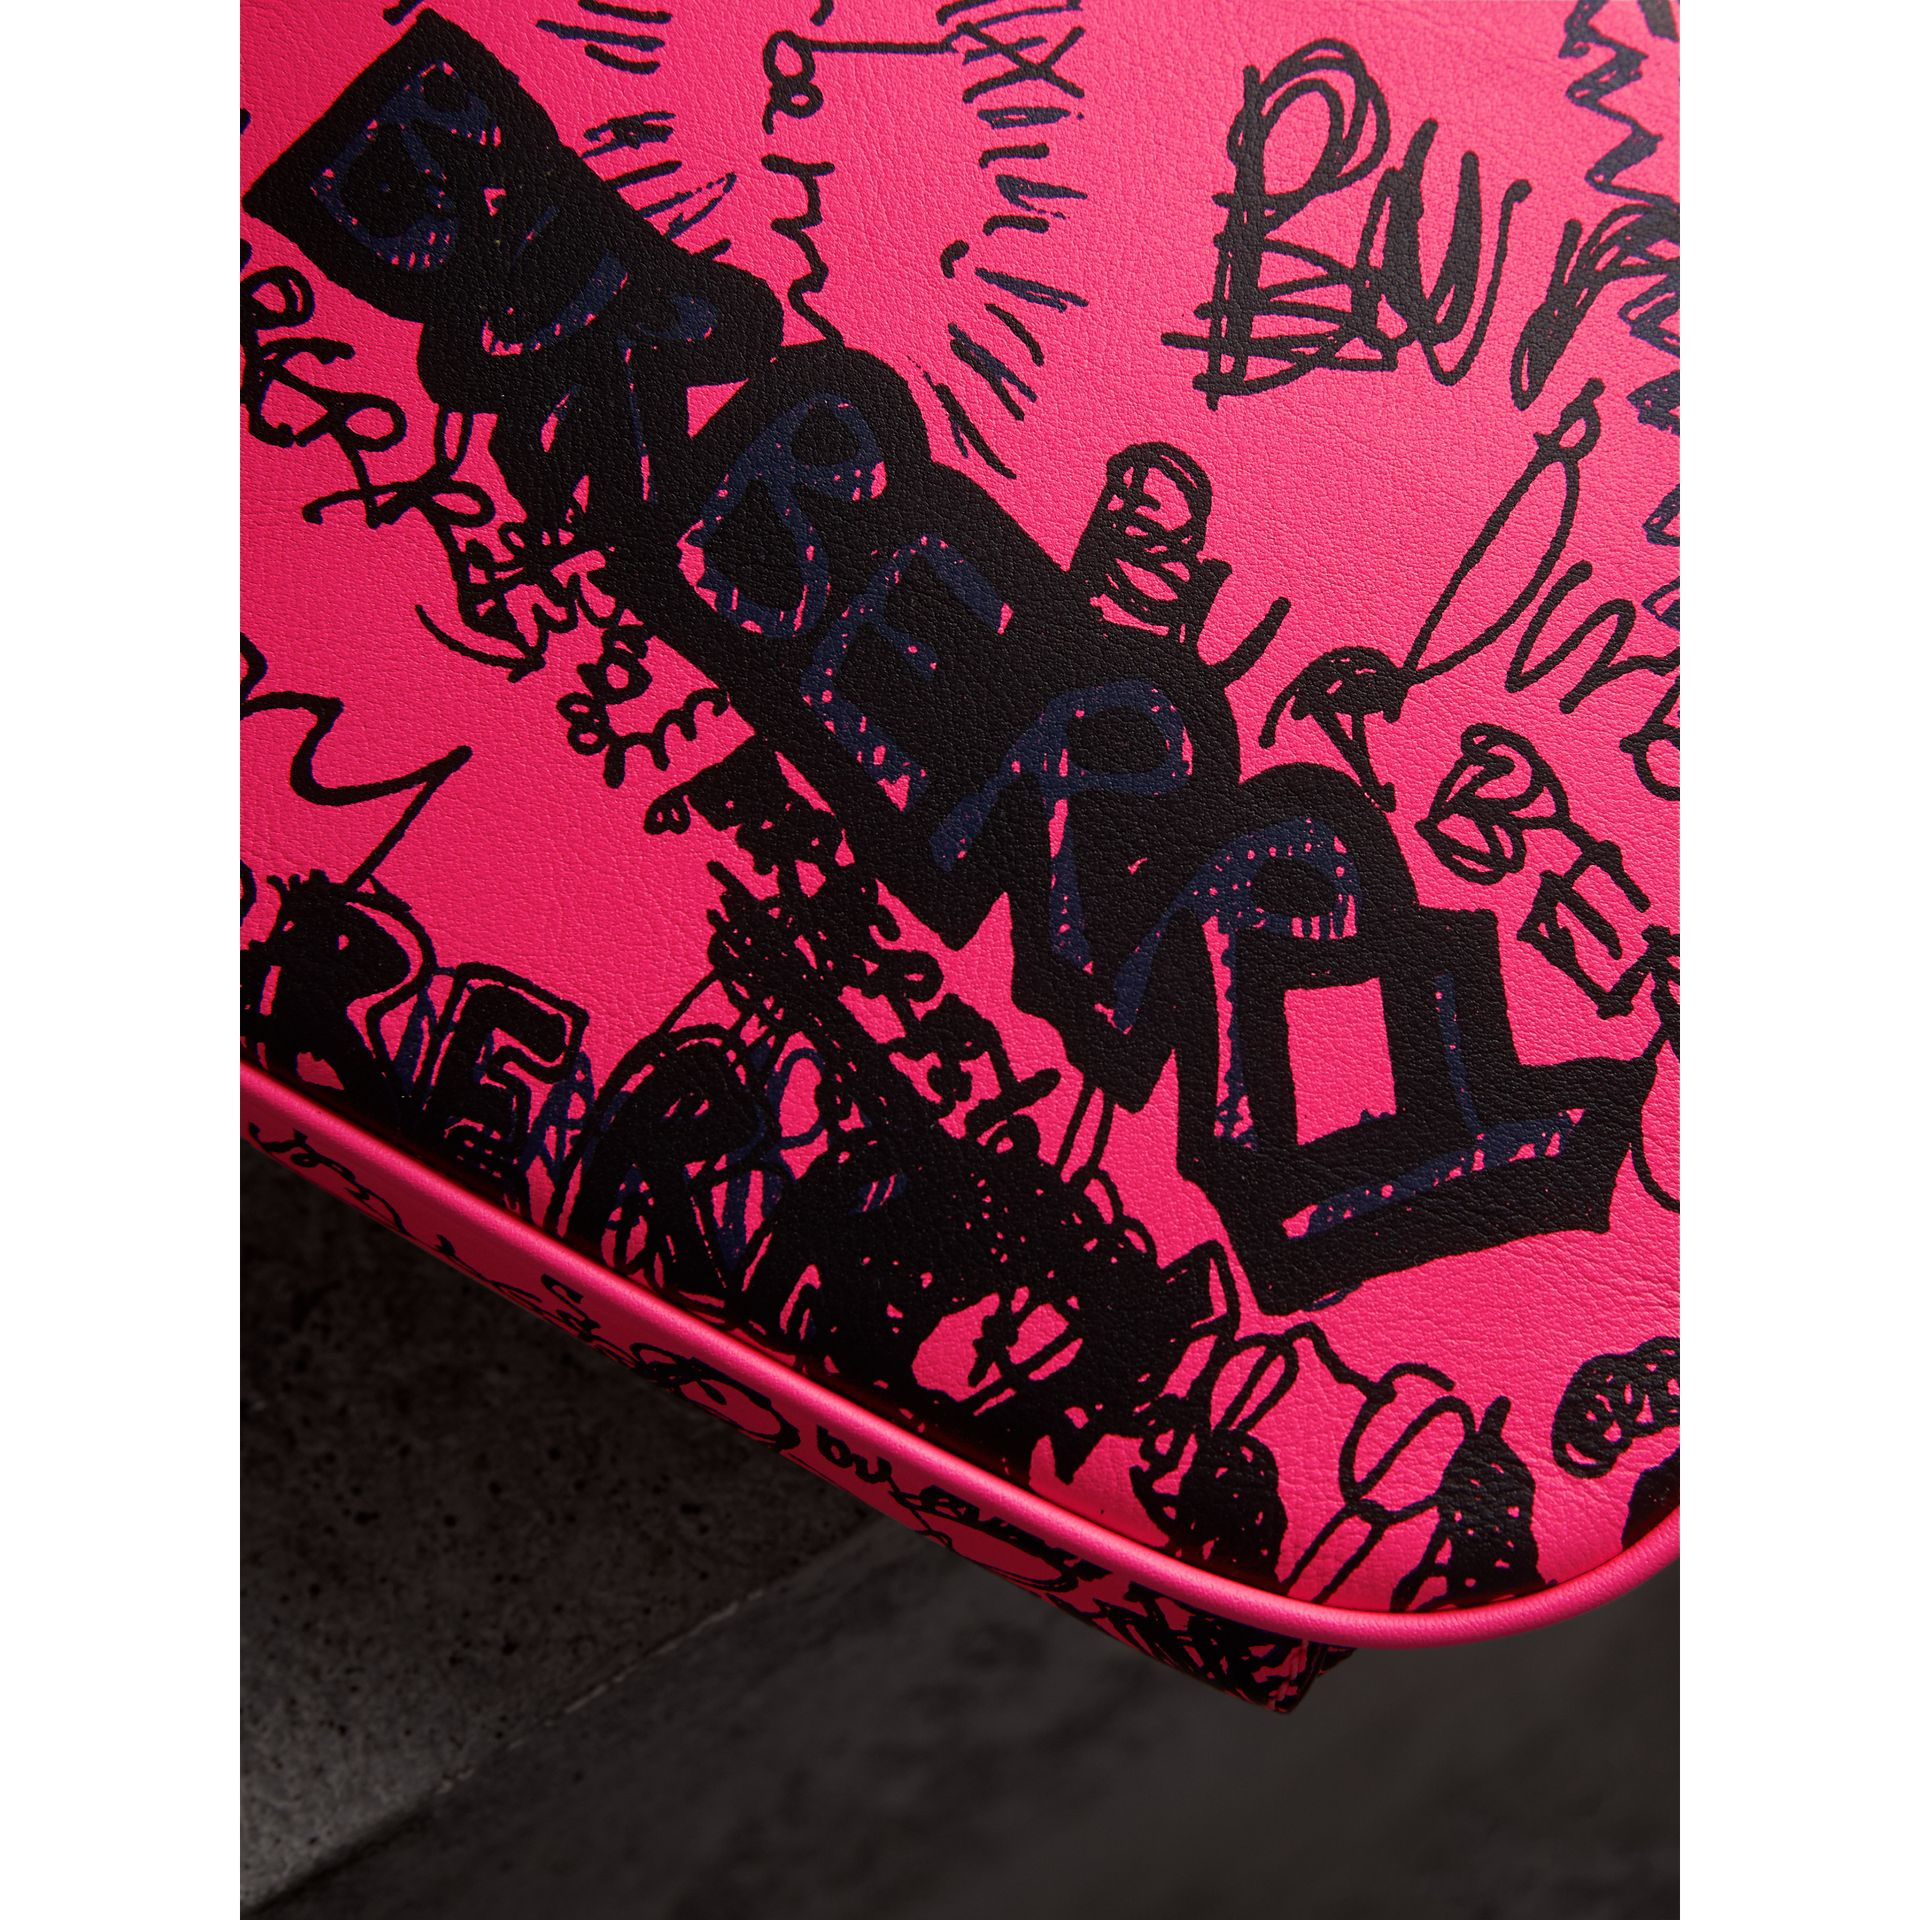 Small Doodle Print Leather Frame Bag in Neon Pink - Women | Burberry Australia - gallery image 1